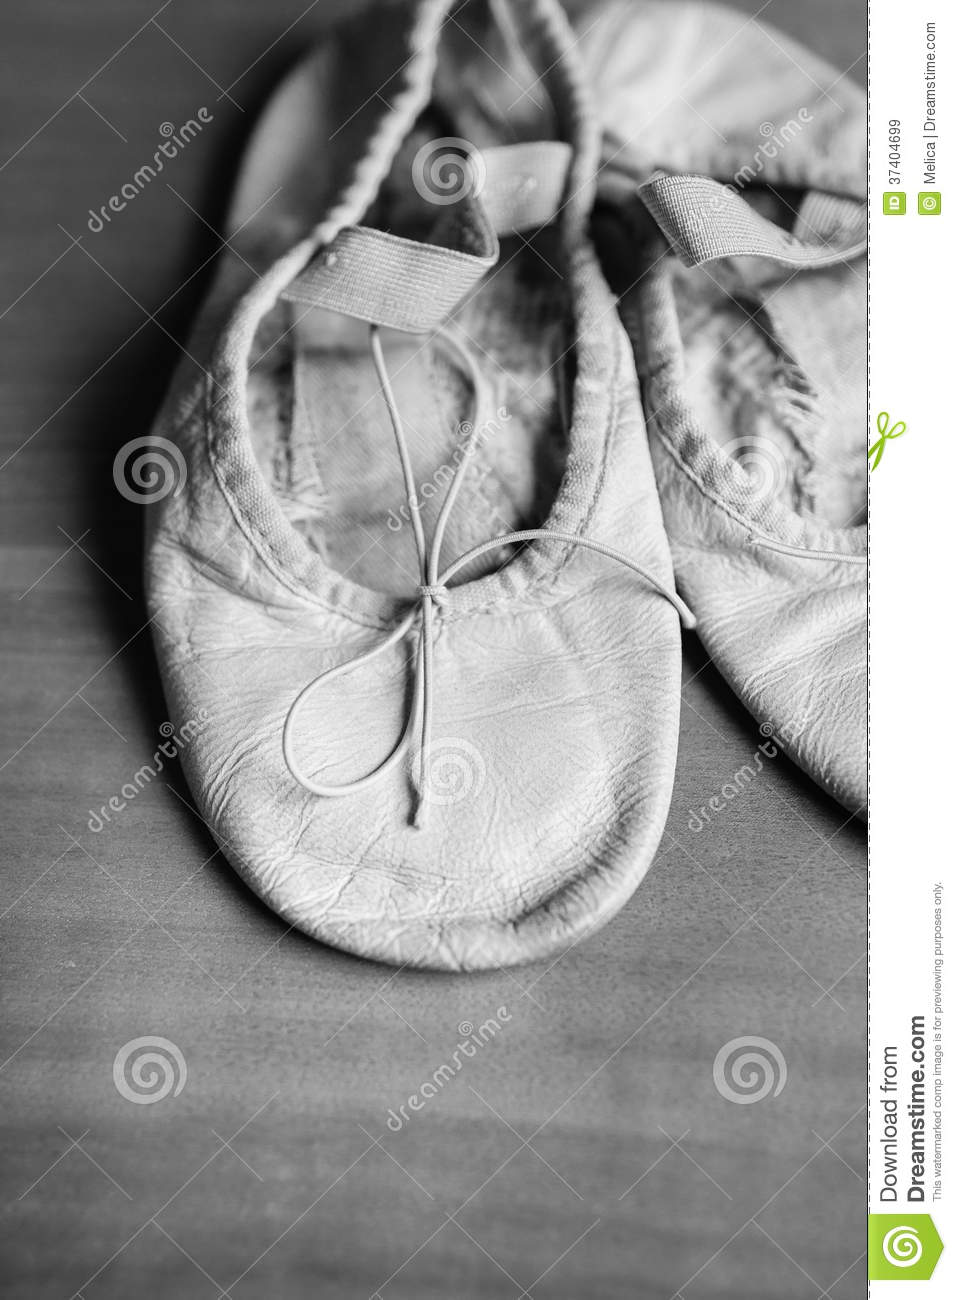 old ballet shoes stock image image of costume children